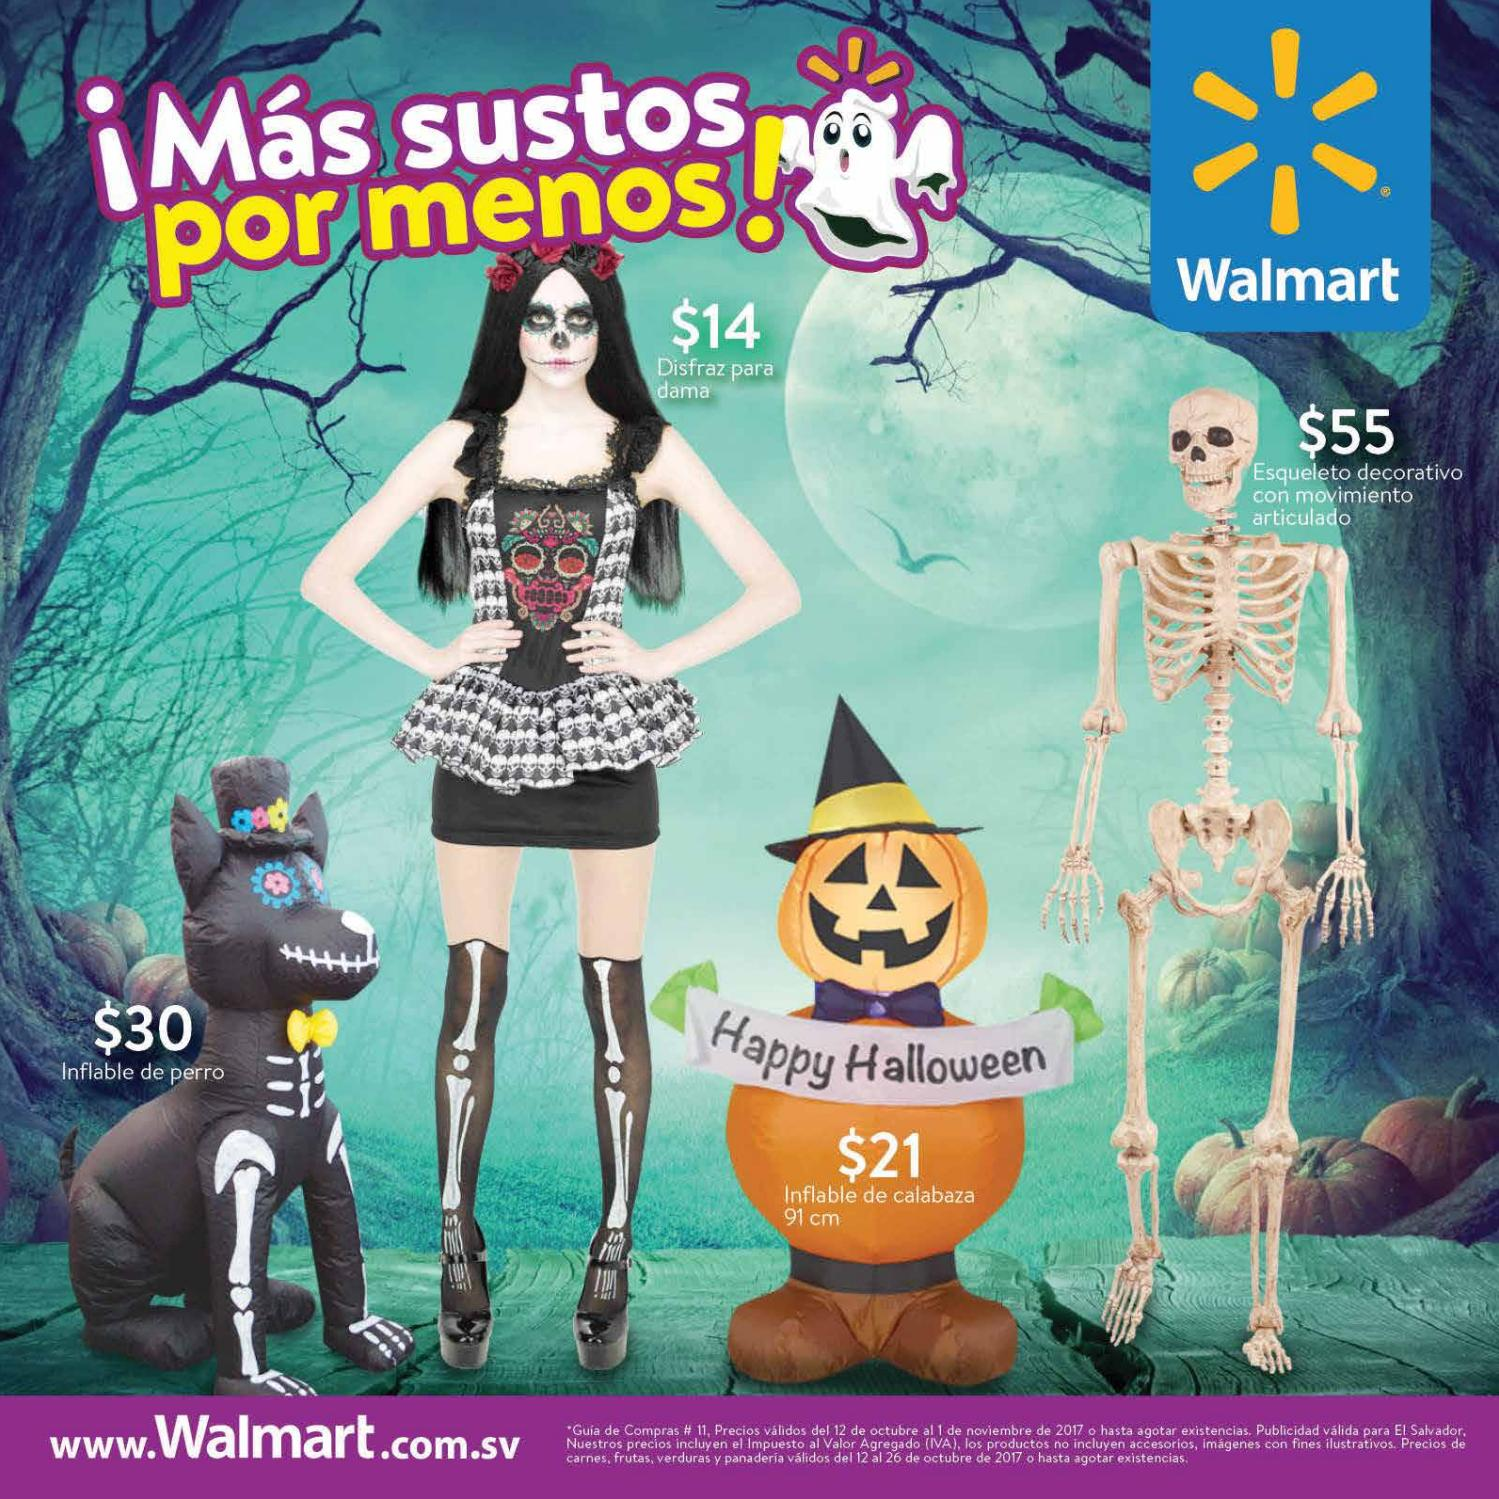 Happy Halloween deals by walmart 2017